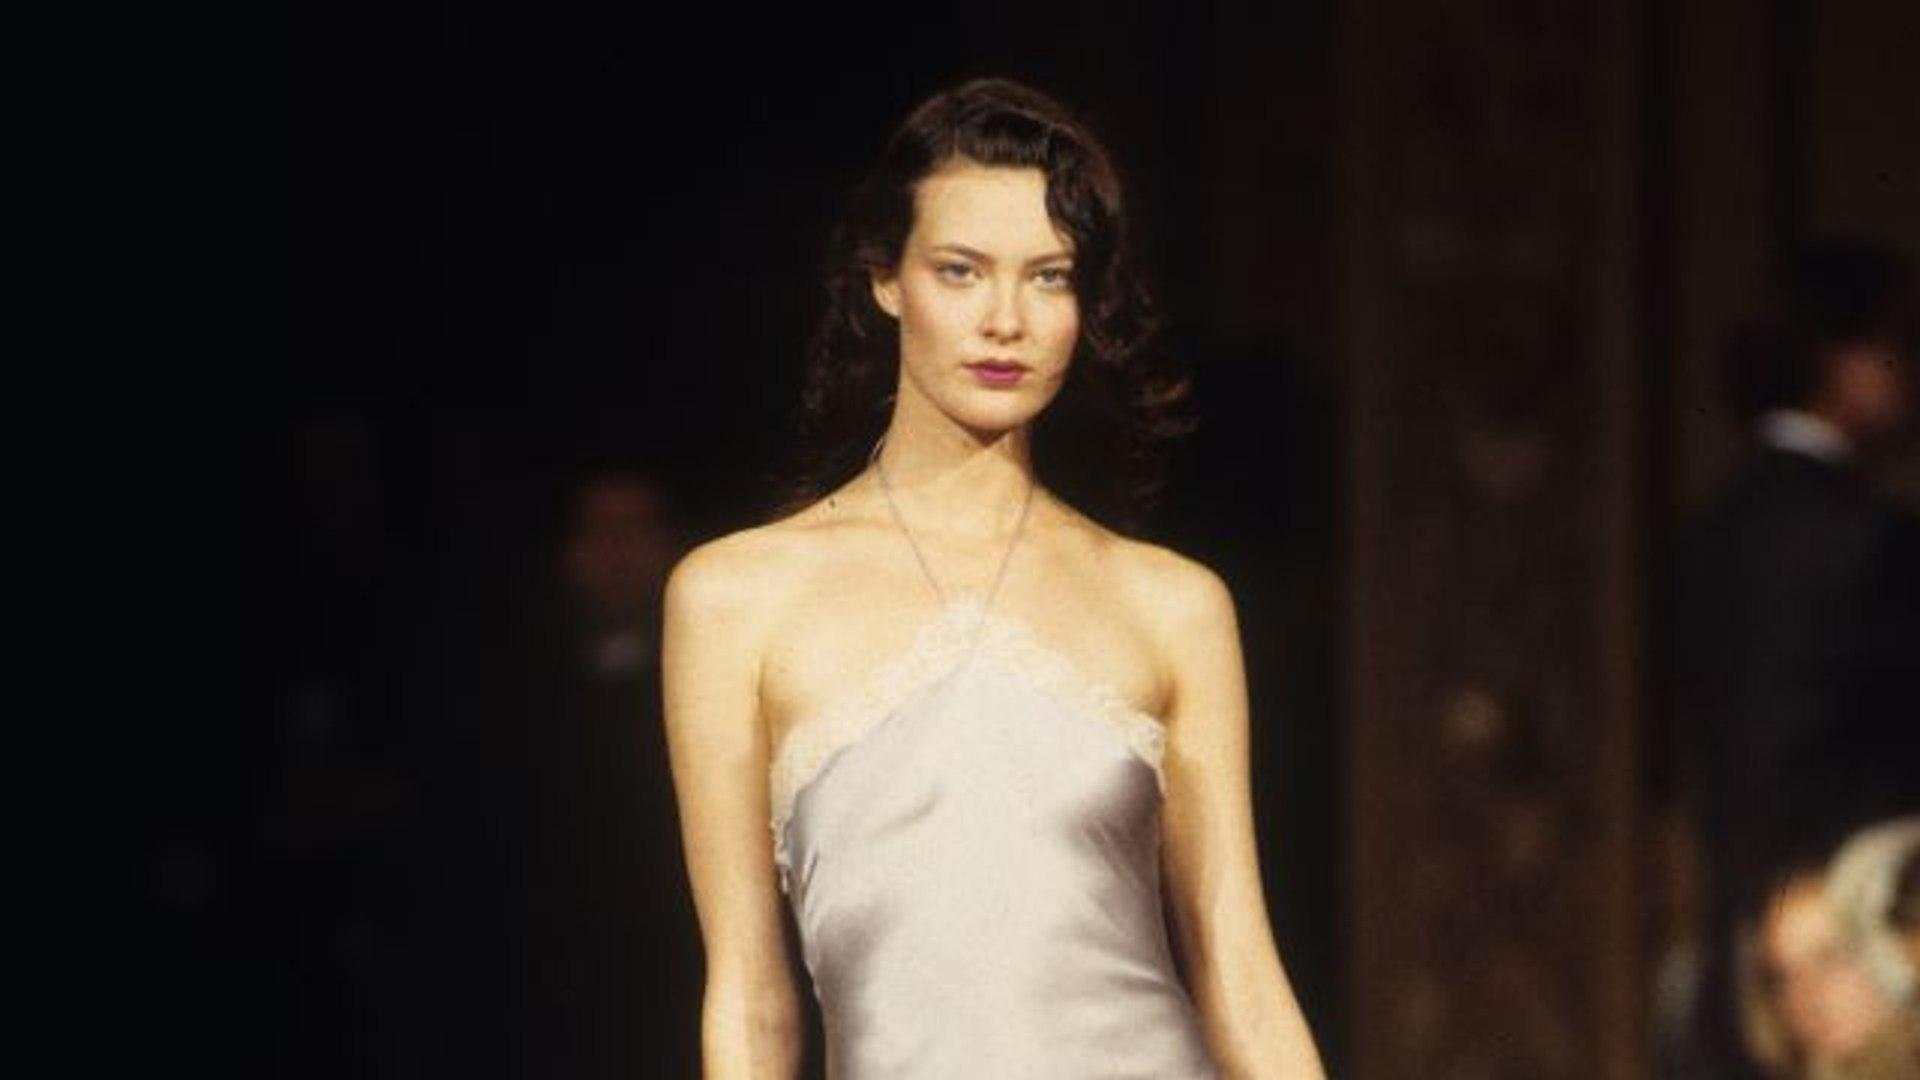 Throwback Thursdays with Tim Blanks - Shalom Harlow: Made for Haute ...